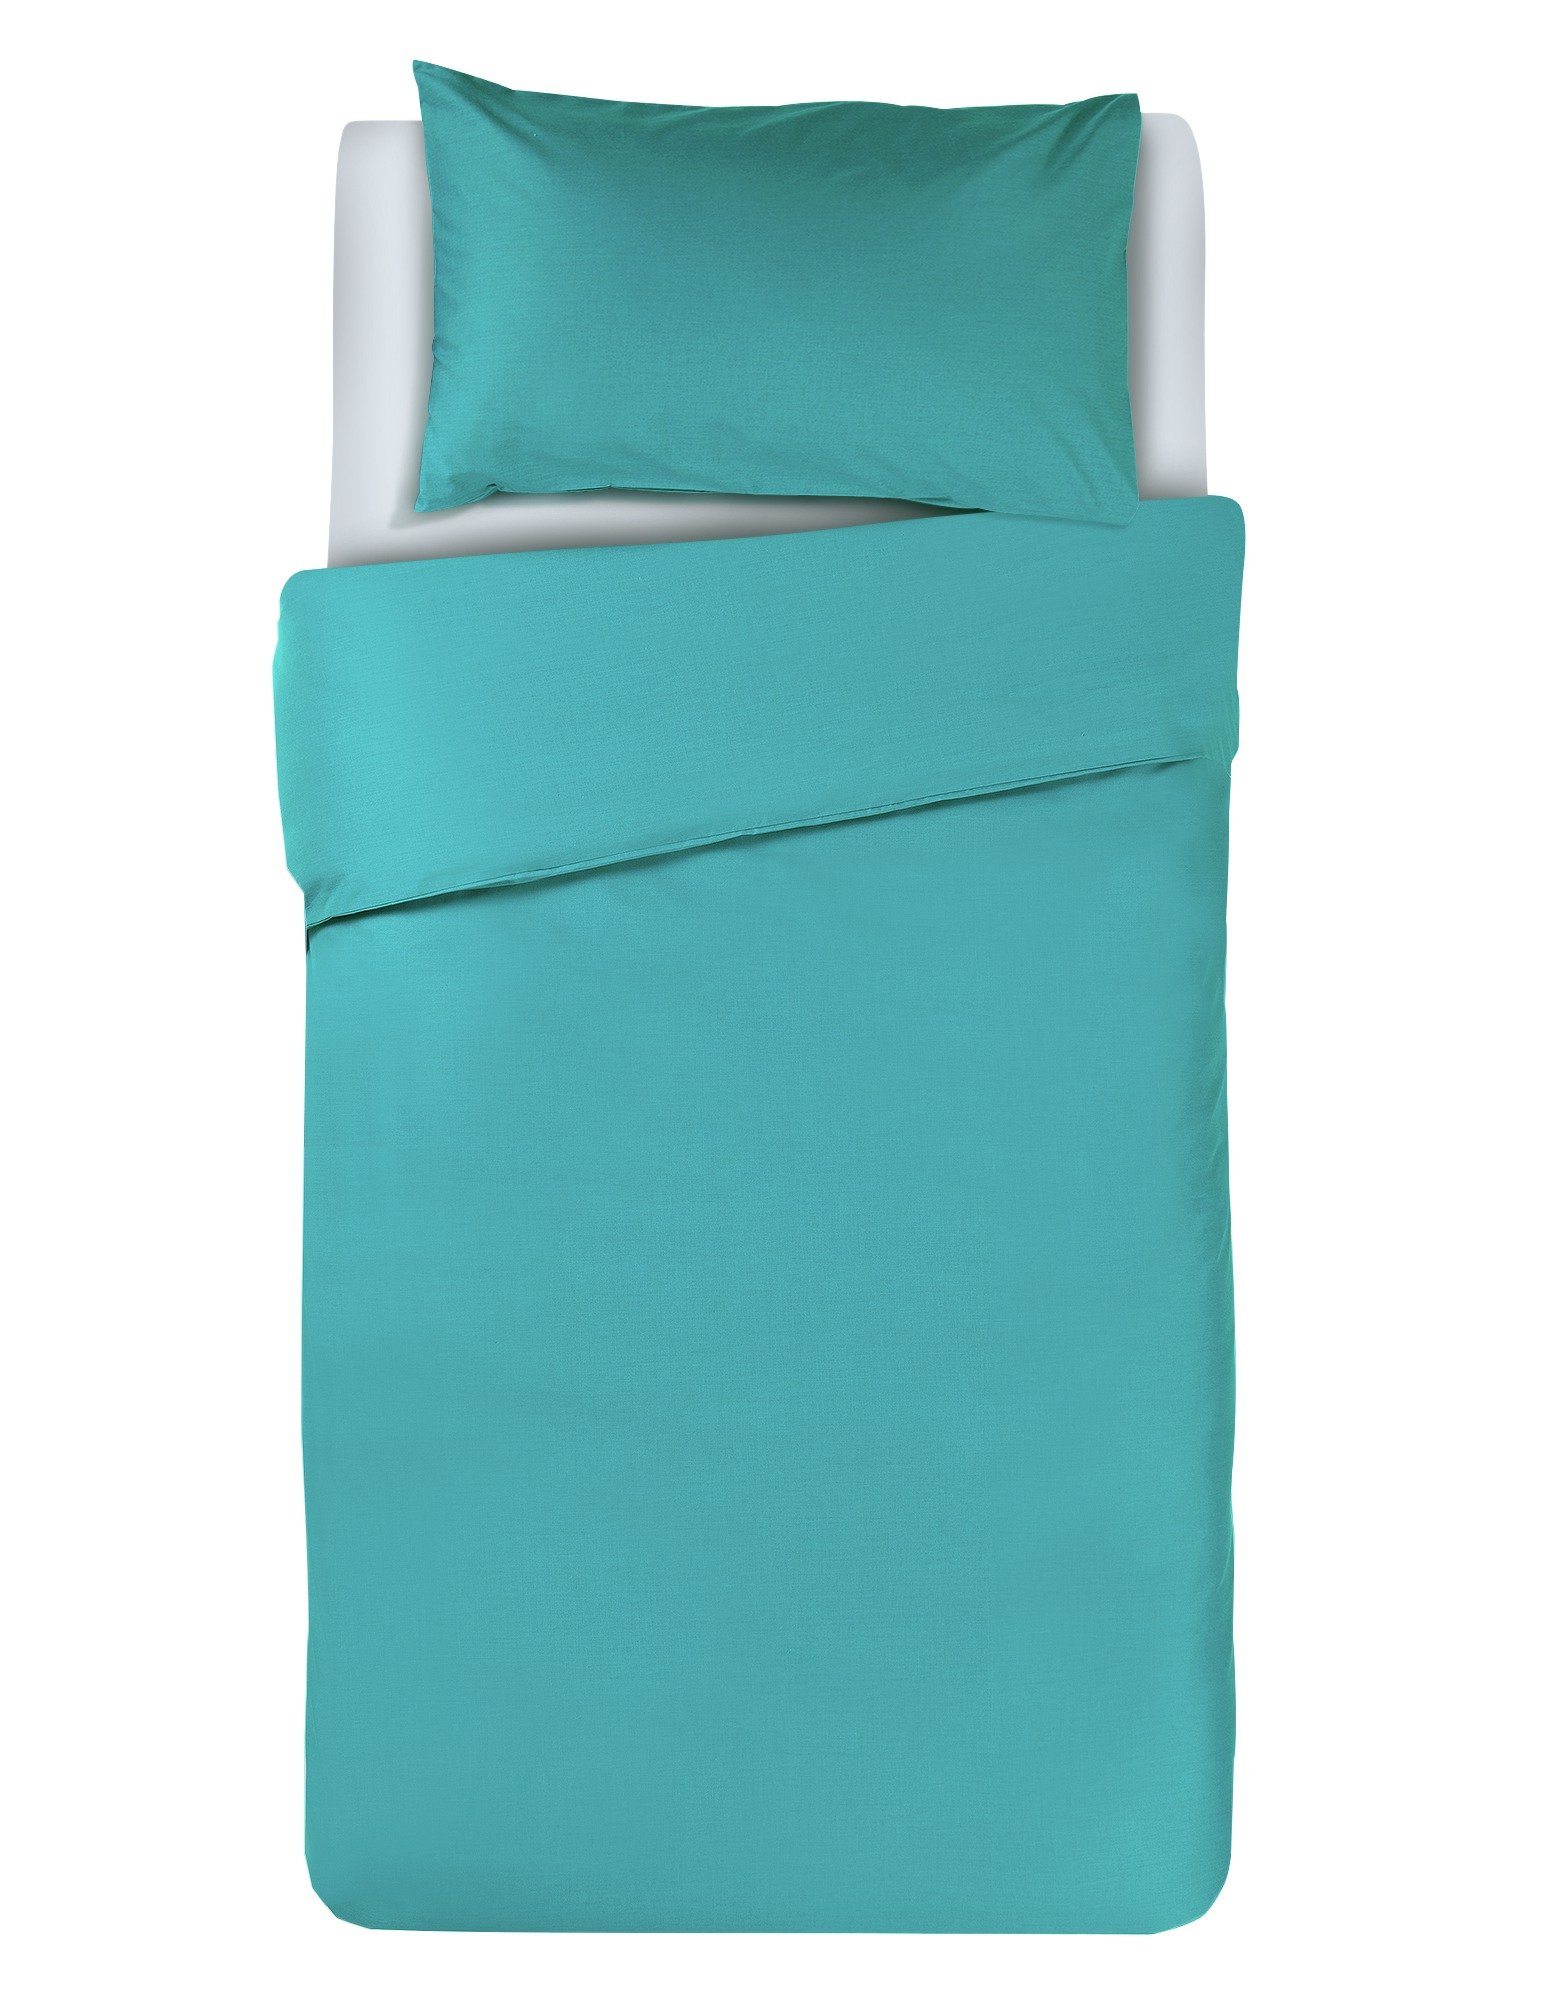 colourmatch teal bedding set  single